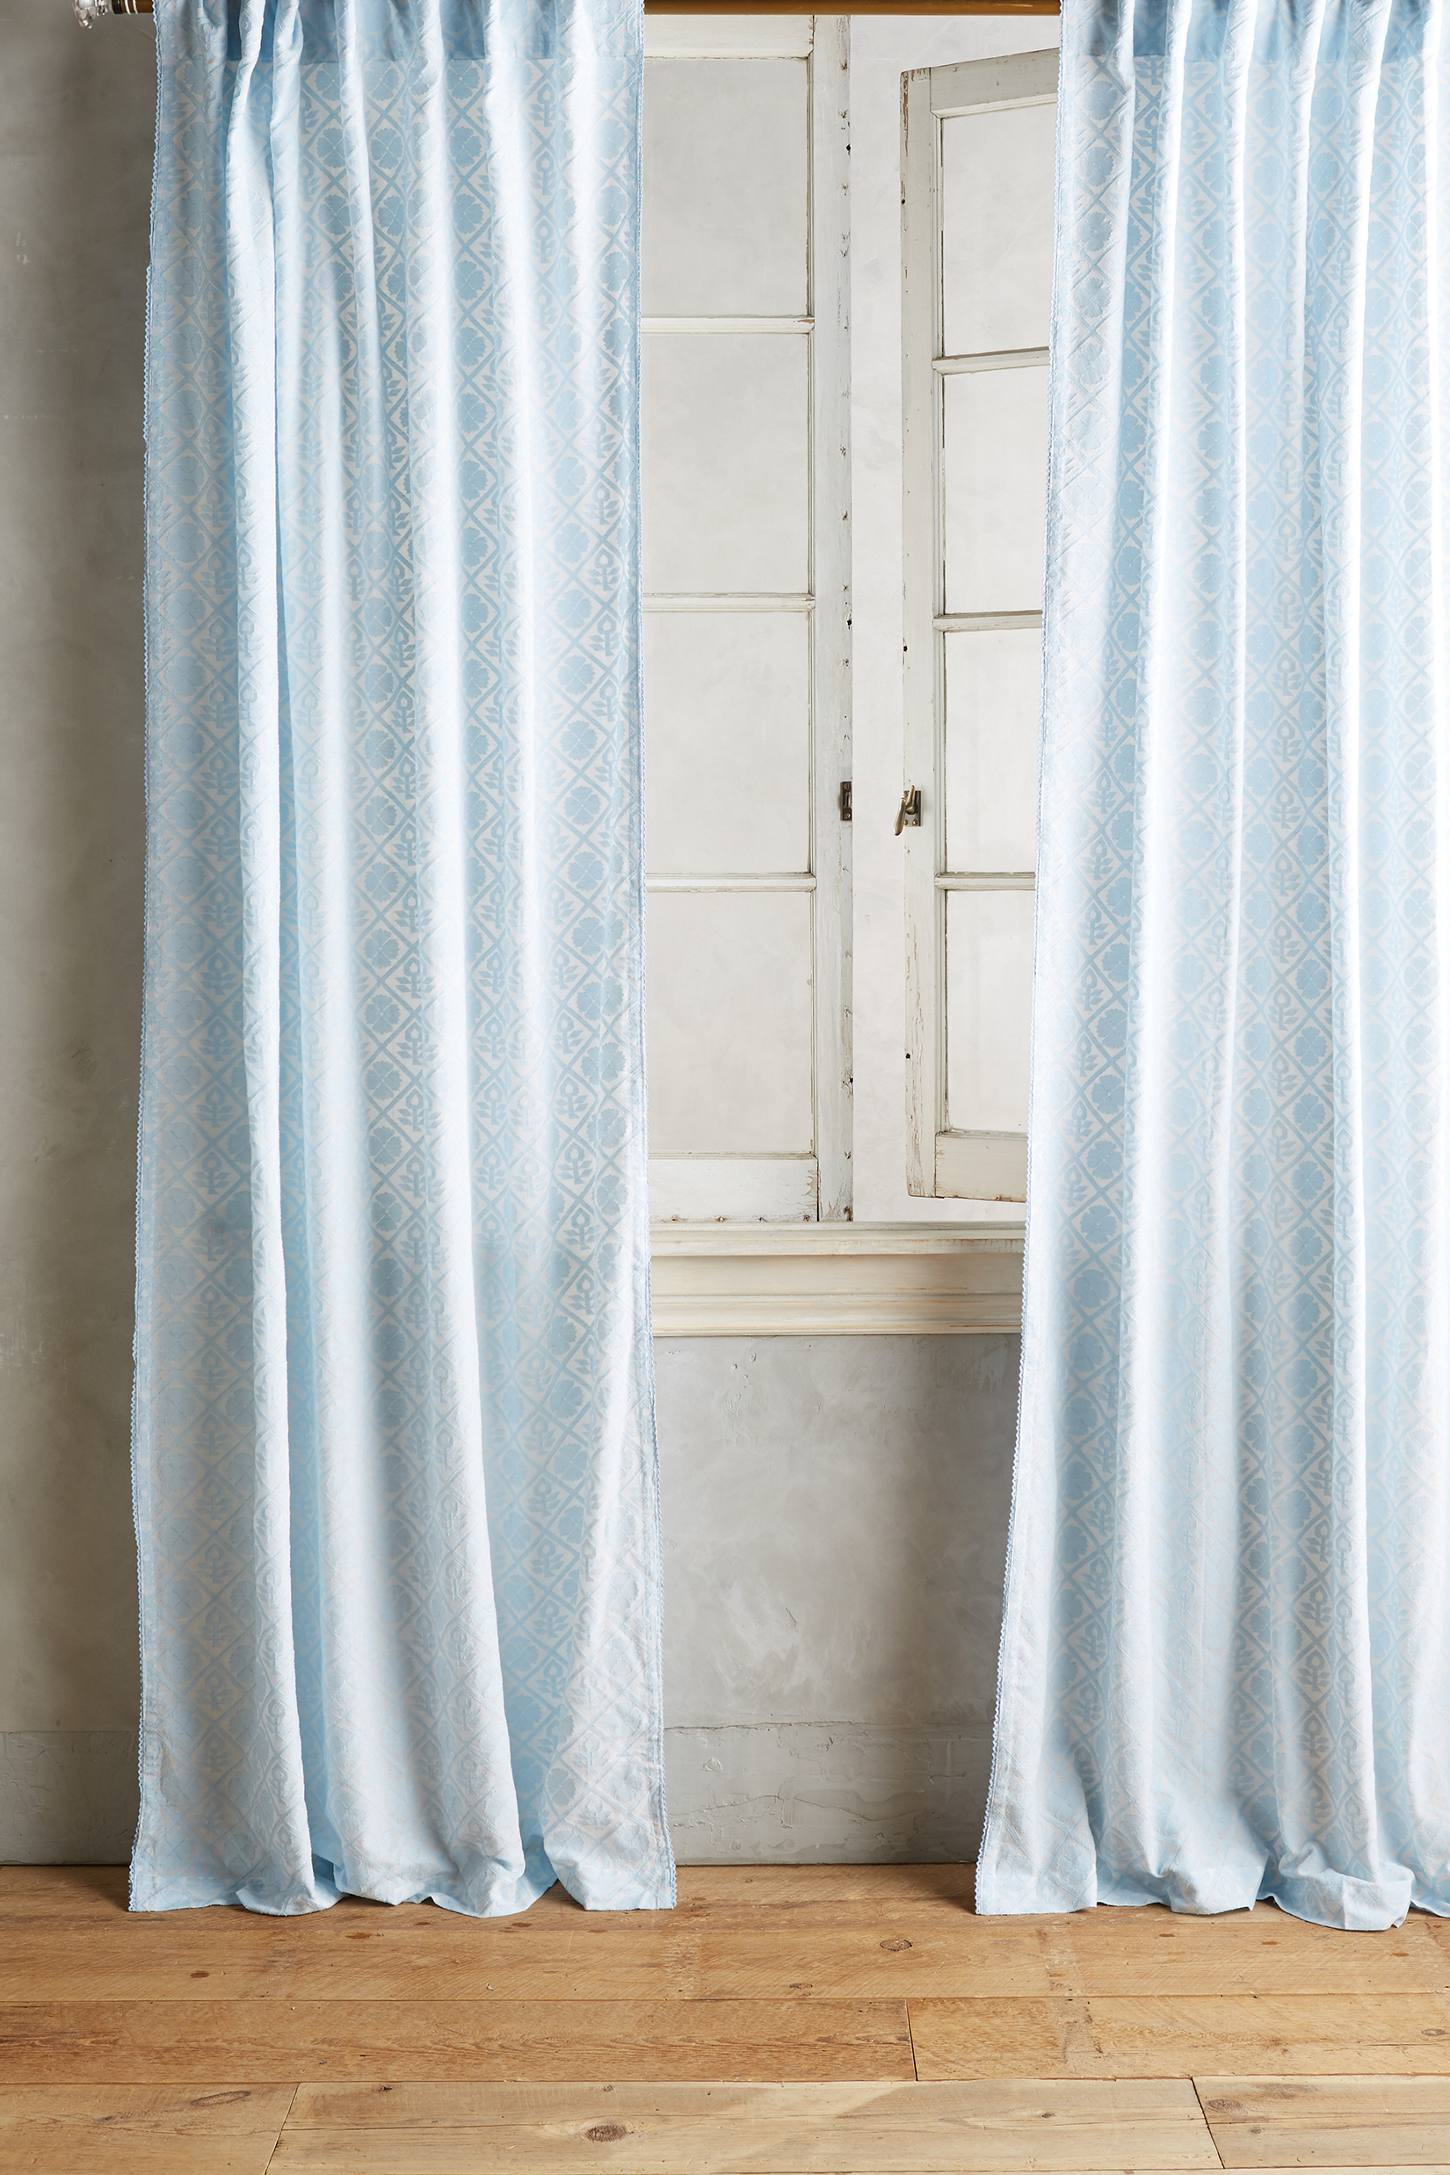 Slide View: 1: Quadrille Curtain